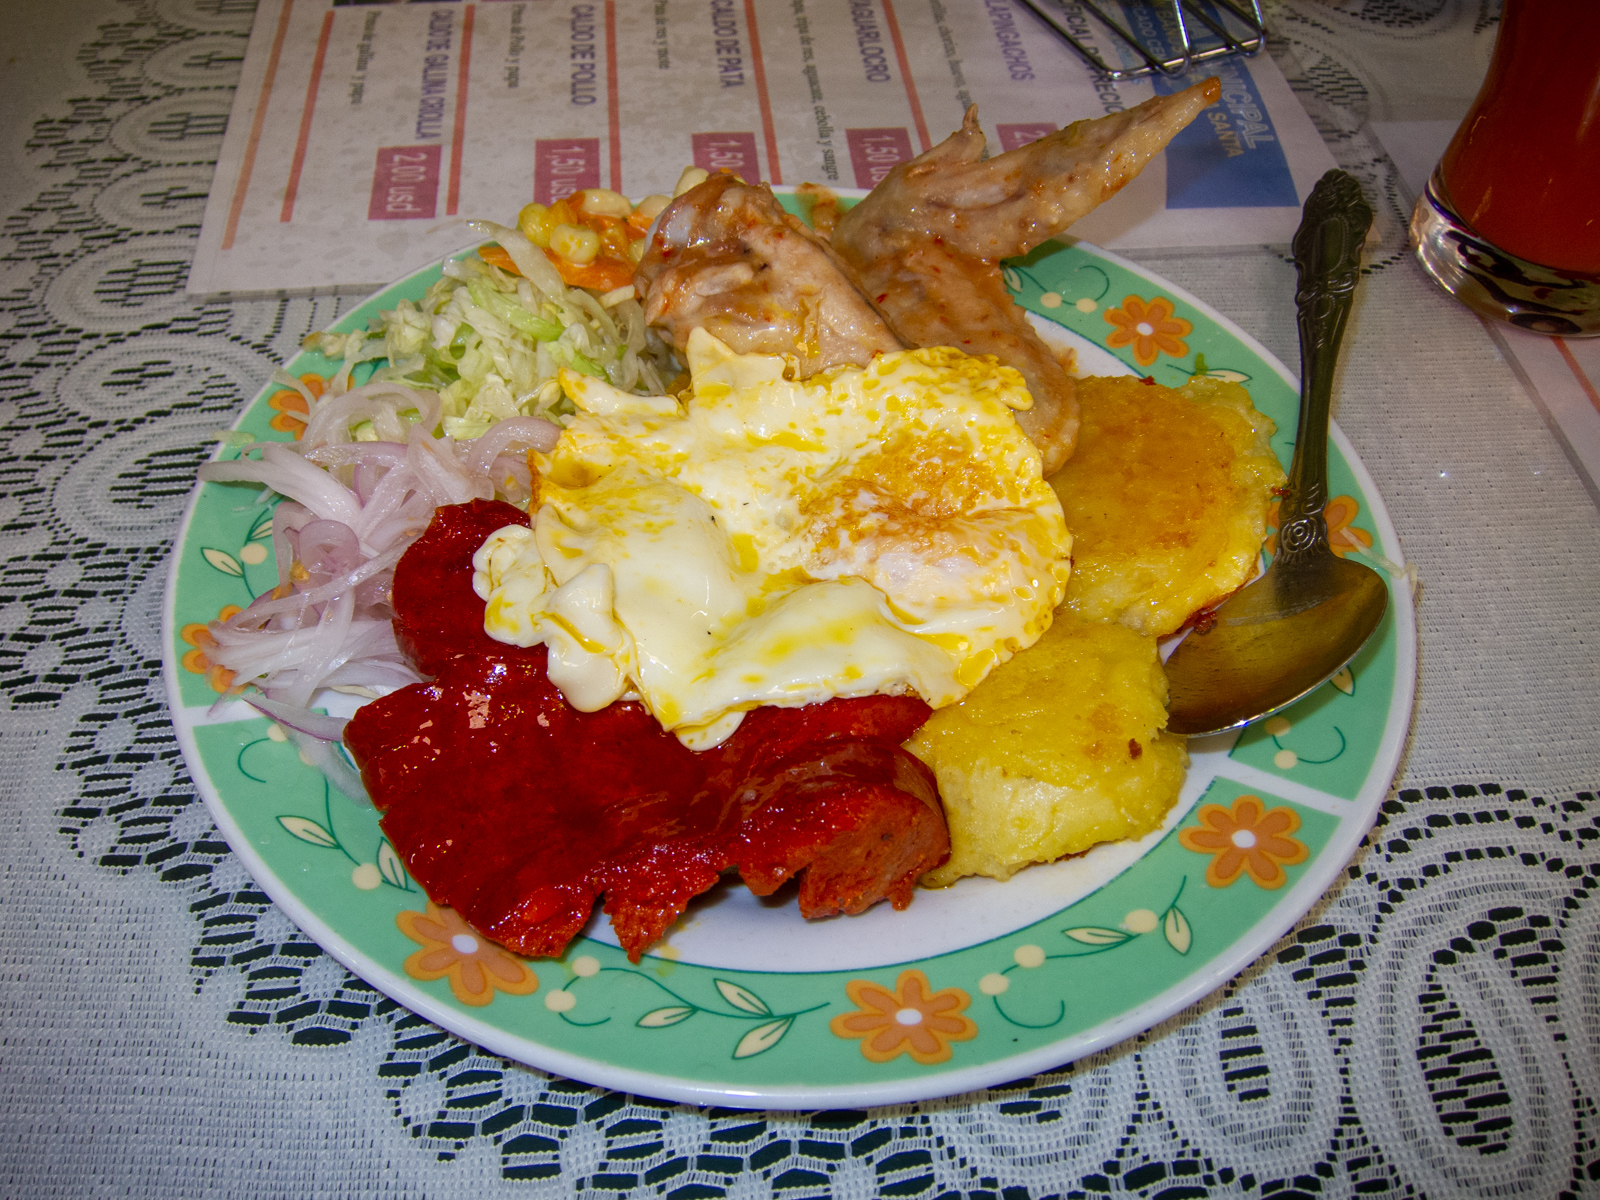 Llapingachos served with chicken, chorizo, a fried egg, and salad is typical of Ecuadorian food.